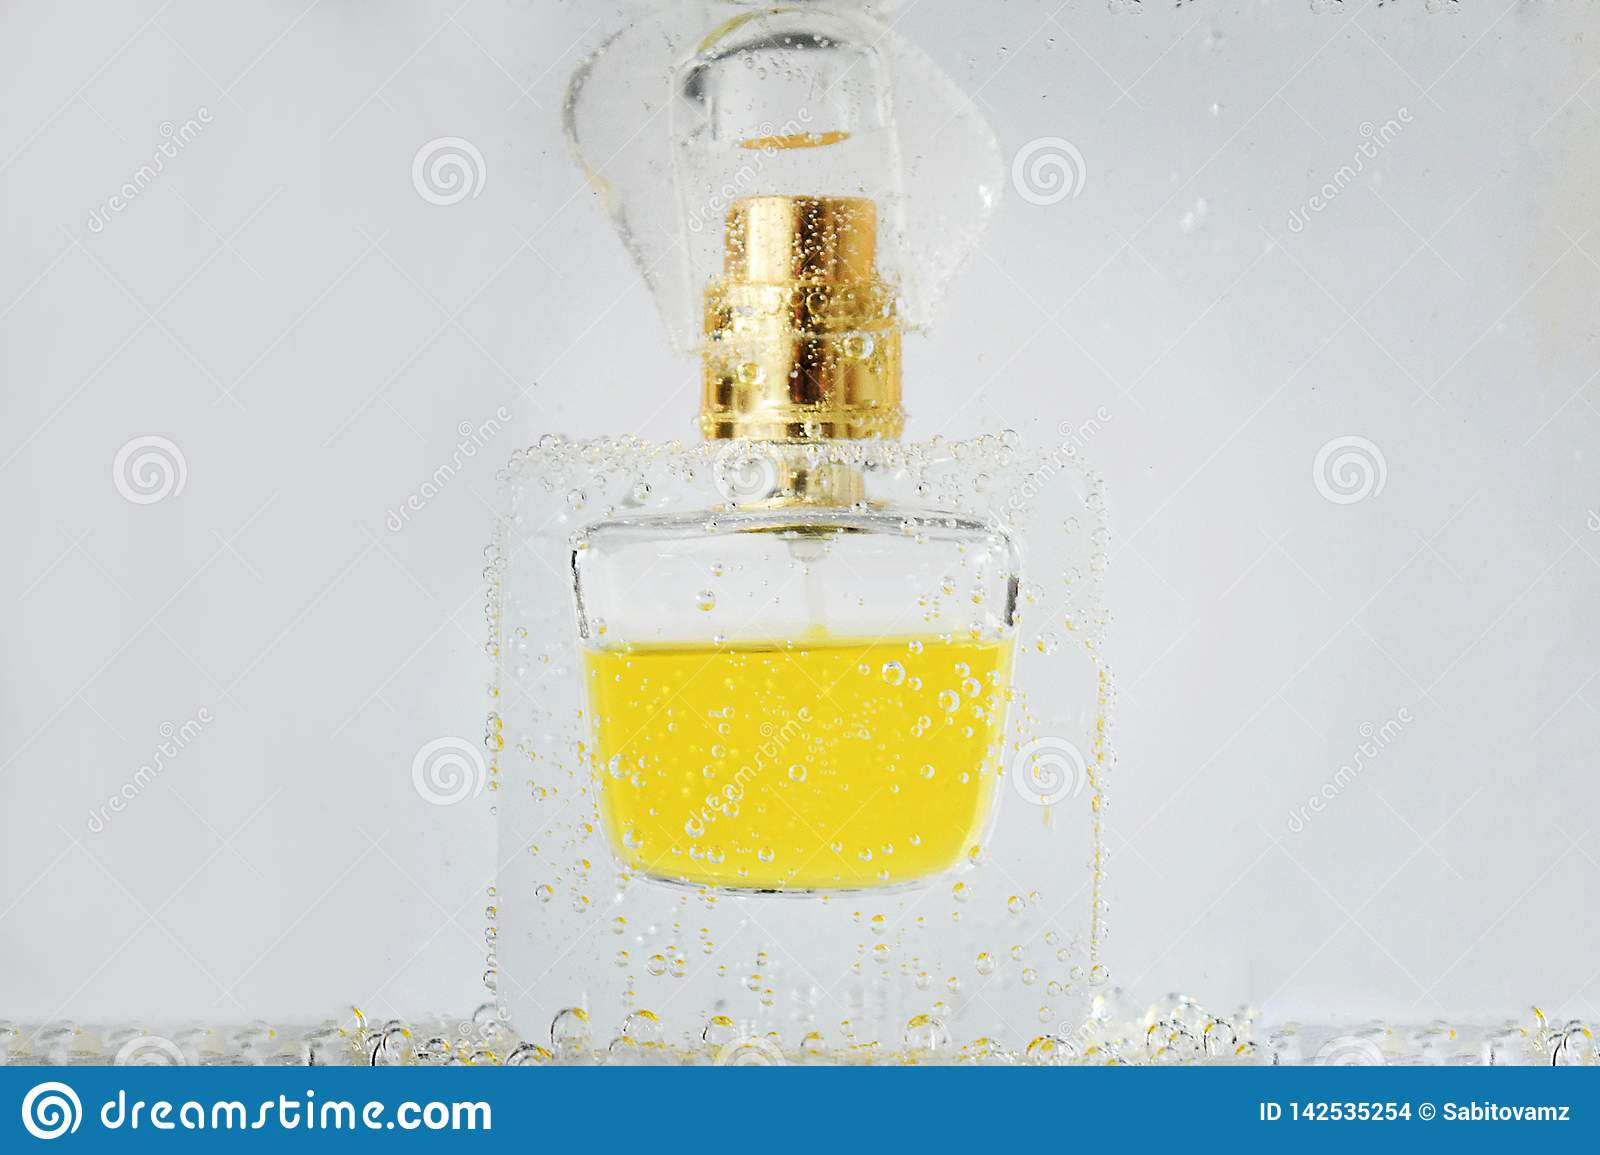 Stylish perfume bottle in water with bubbles